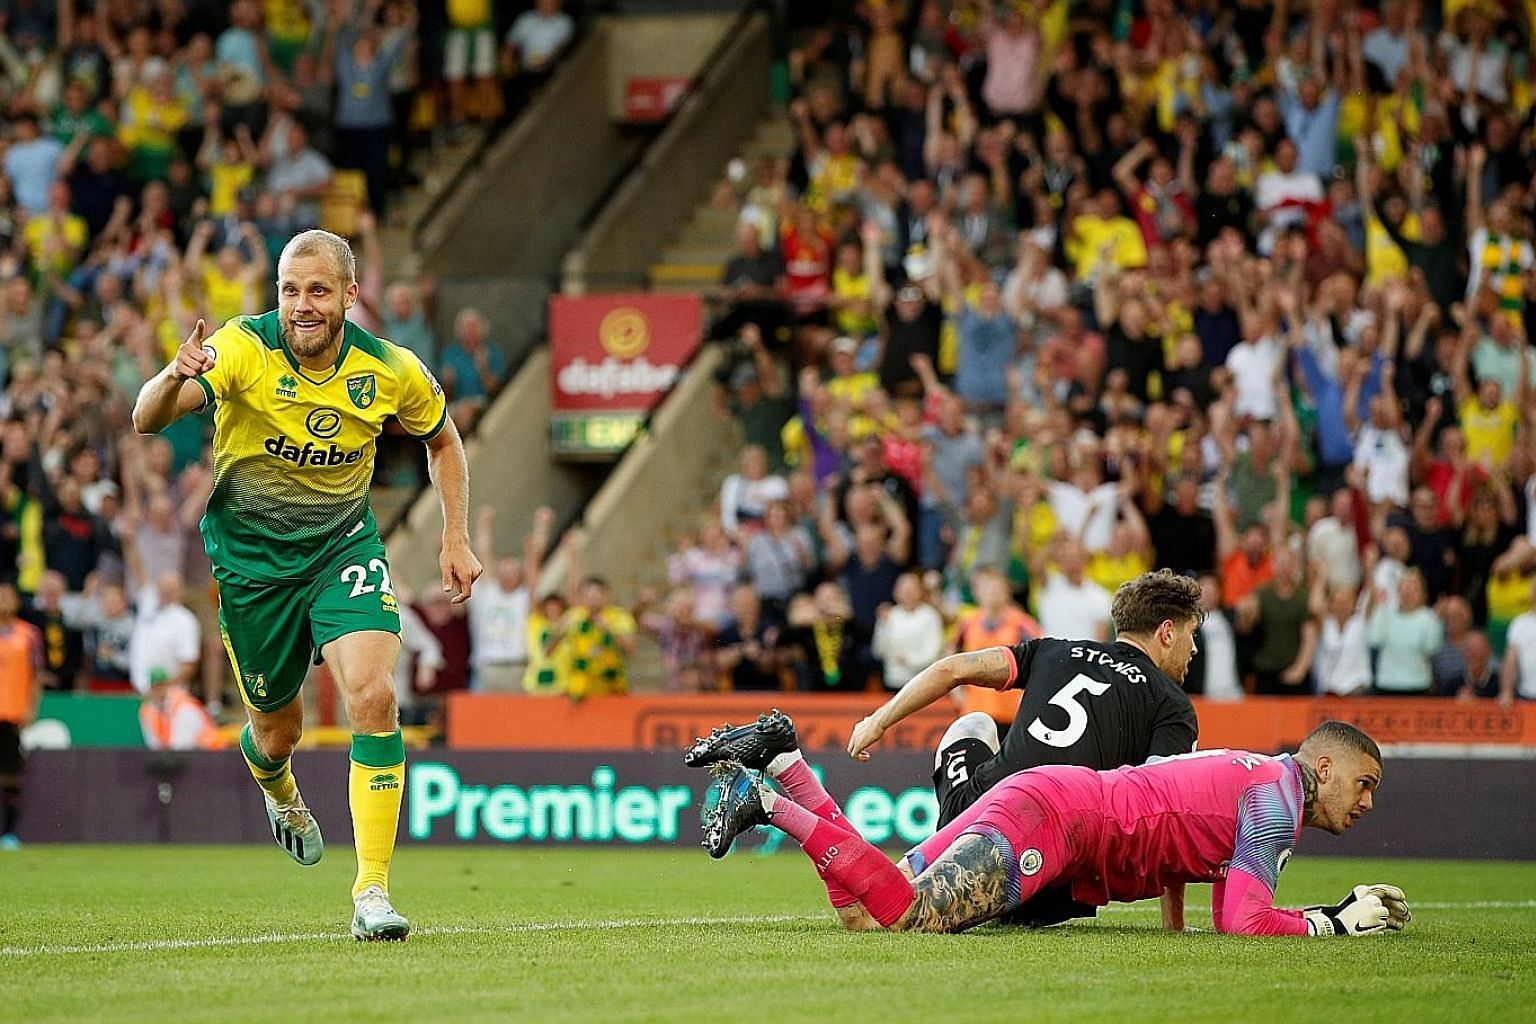 Norwich City's Teemu Pukki celebrating after scoring his team's third goal on Saturday, leaving the crestfallen City defender John Stones and goalkeeper Ederson looking for answers.